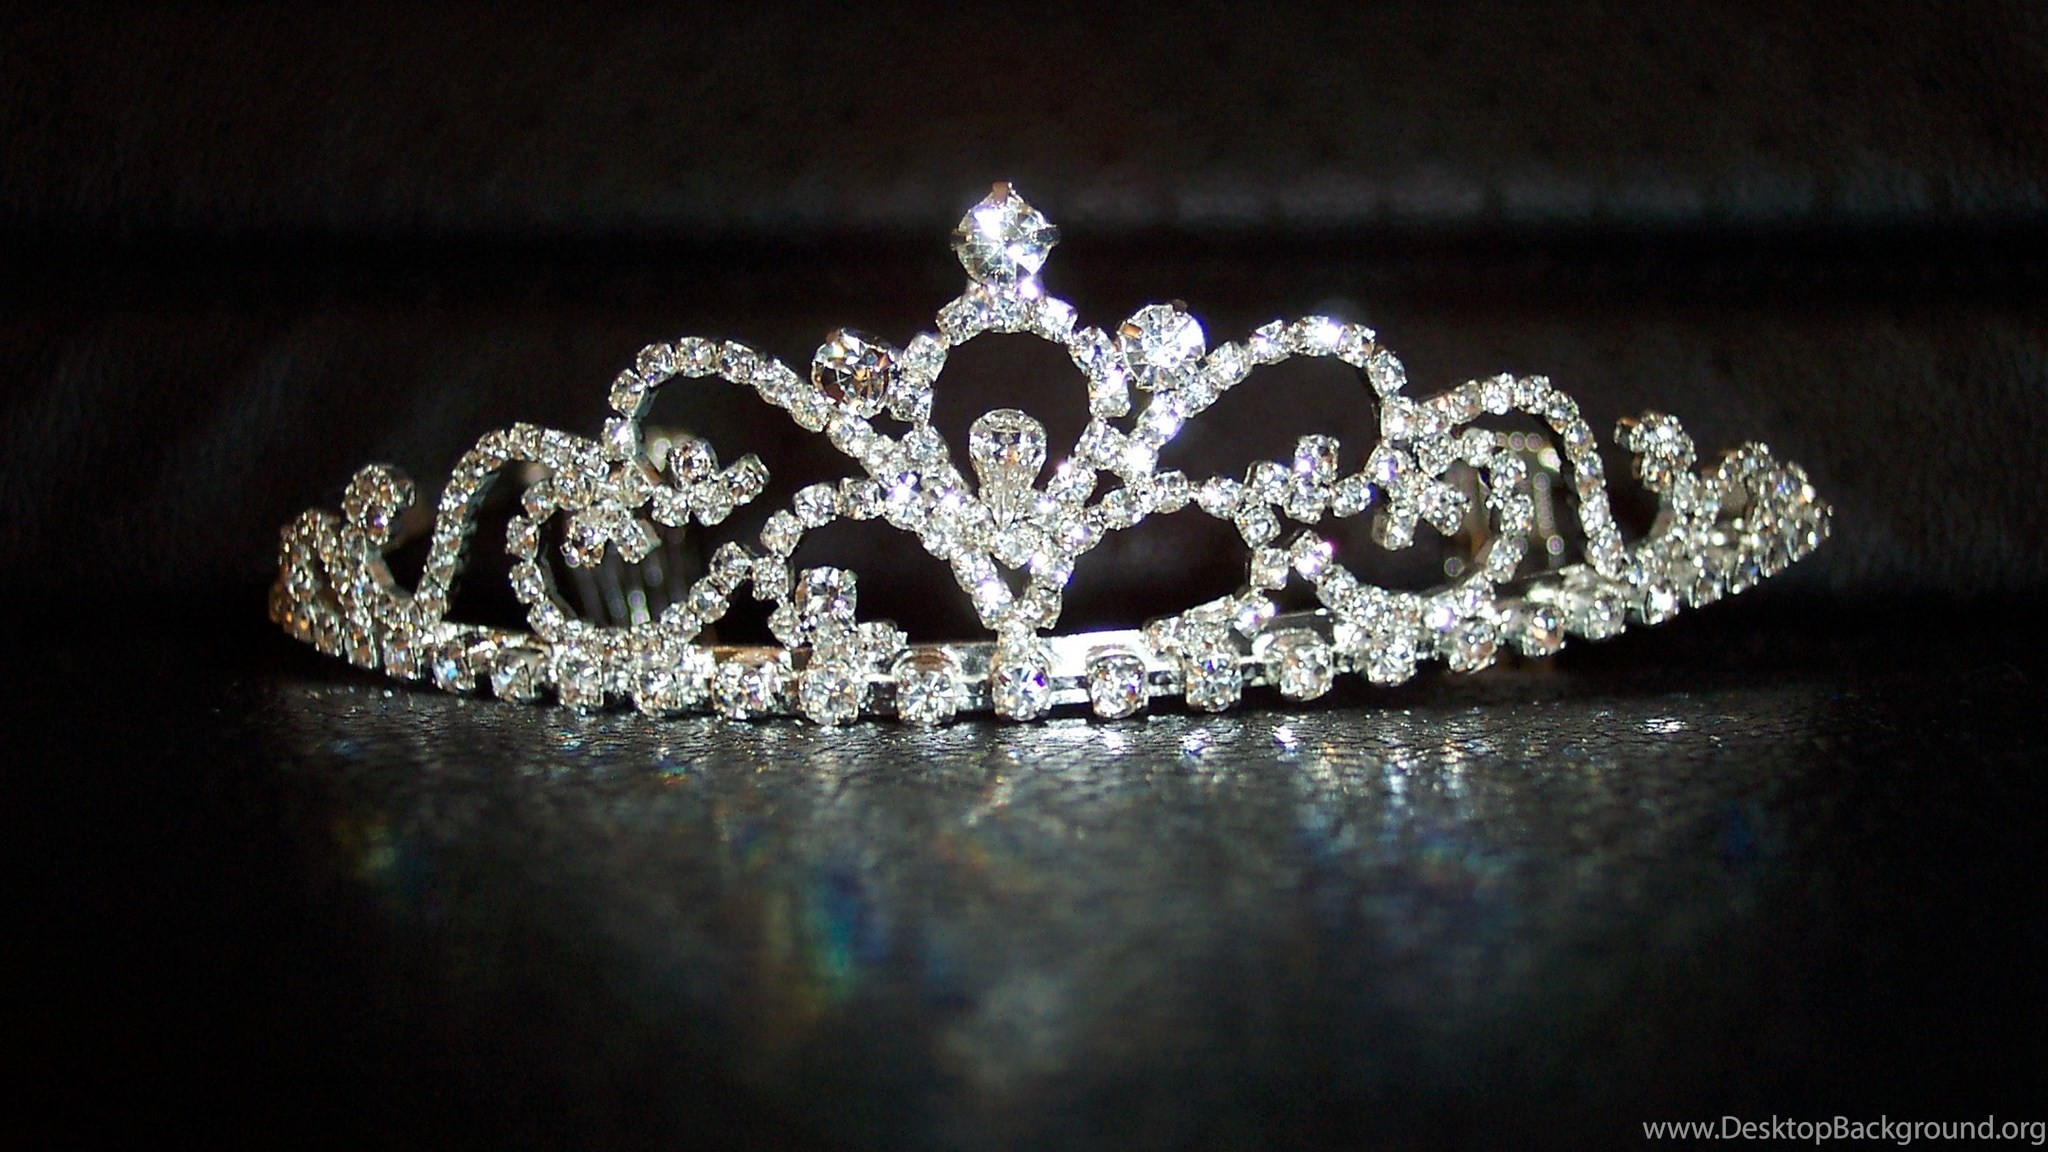 3840x2160 Download Wallpaper Hand Girl Crown Fb Cover Photo Queen Crown 1780649 Hd Wallpaper Backgrounds Download